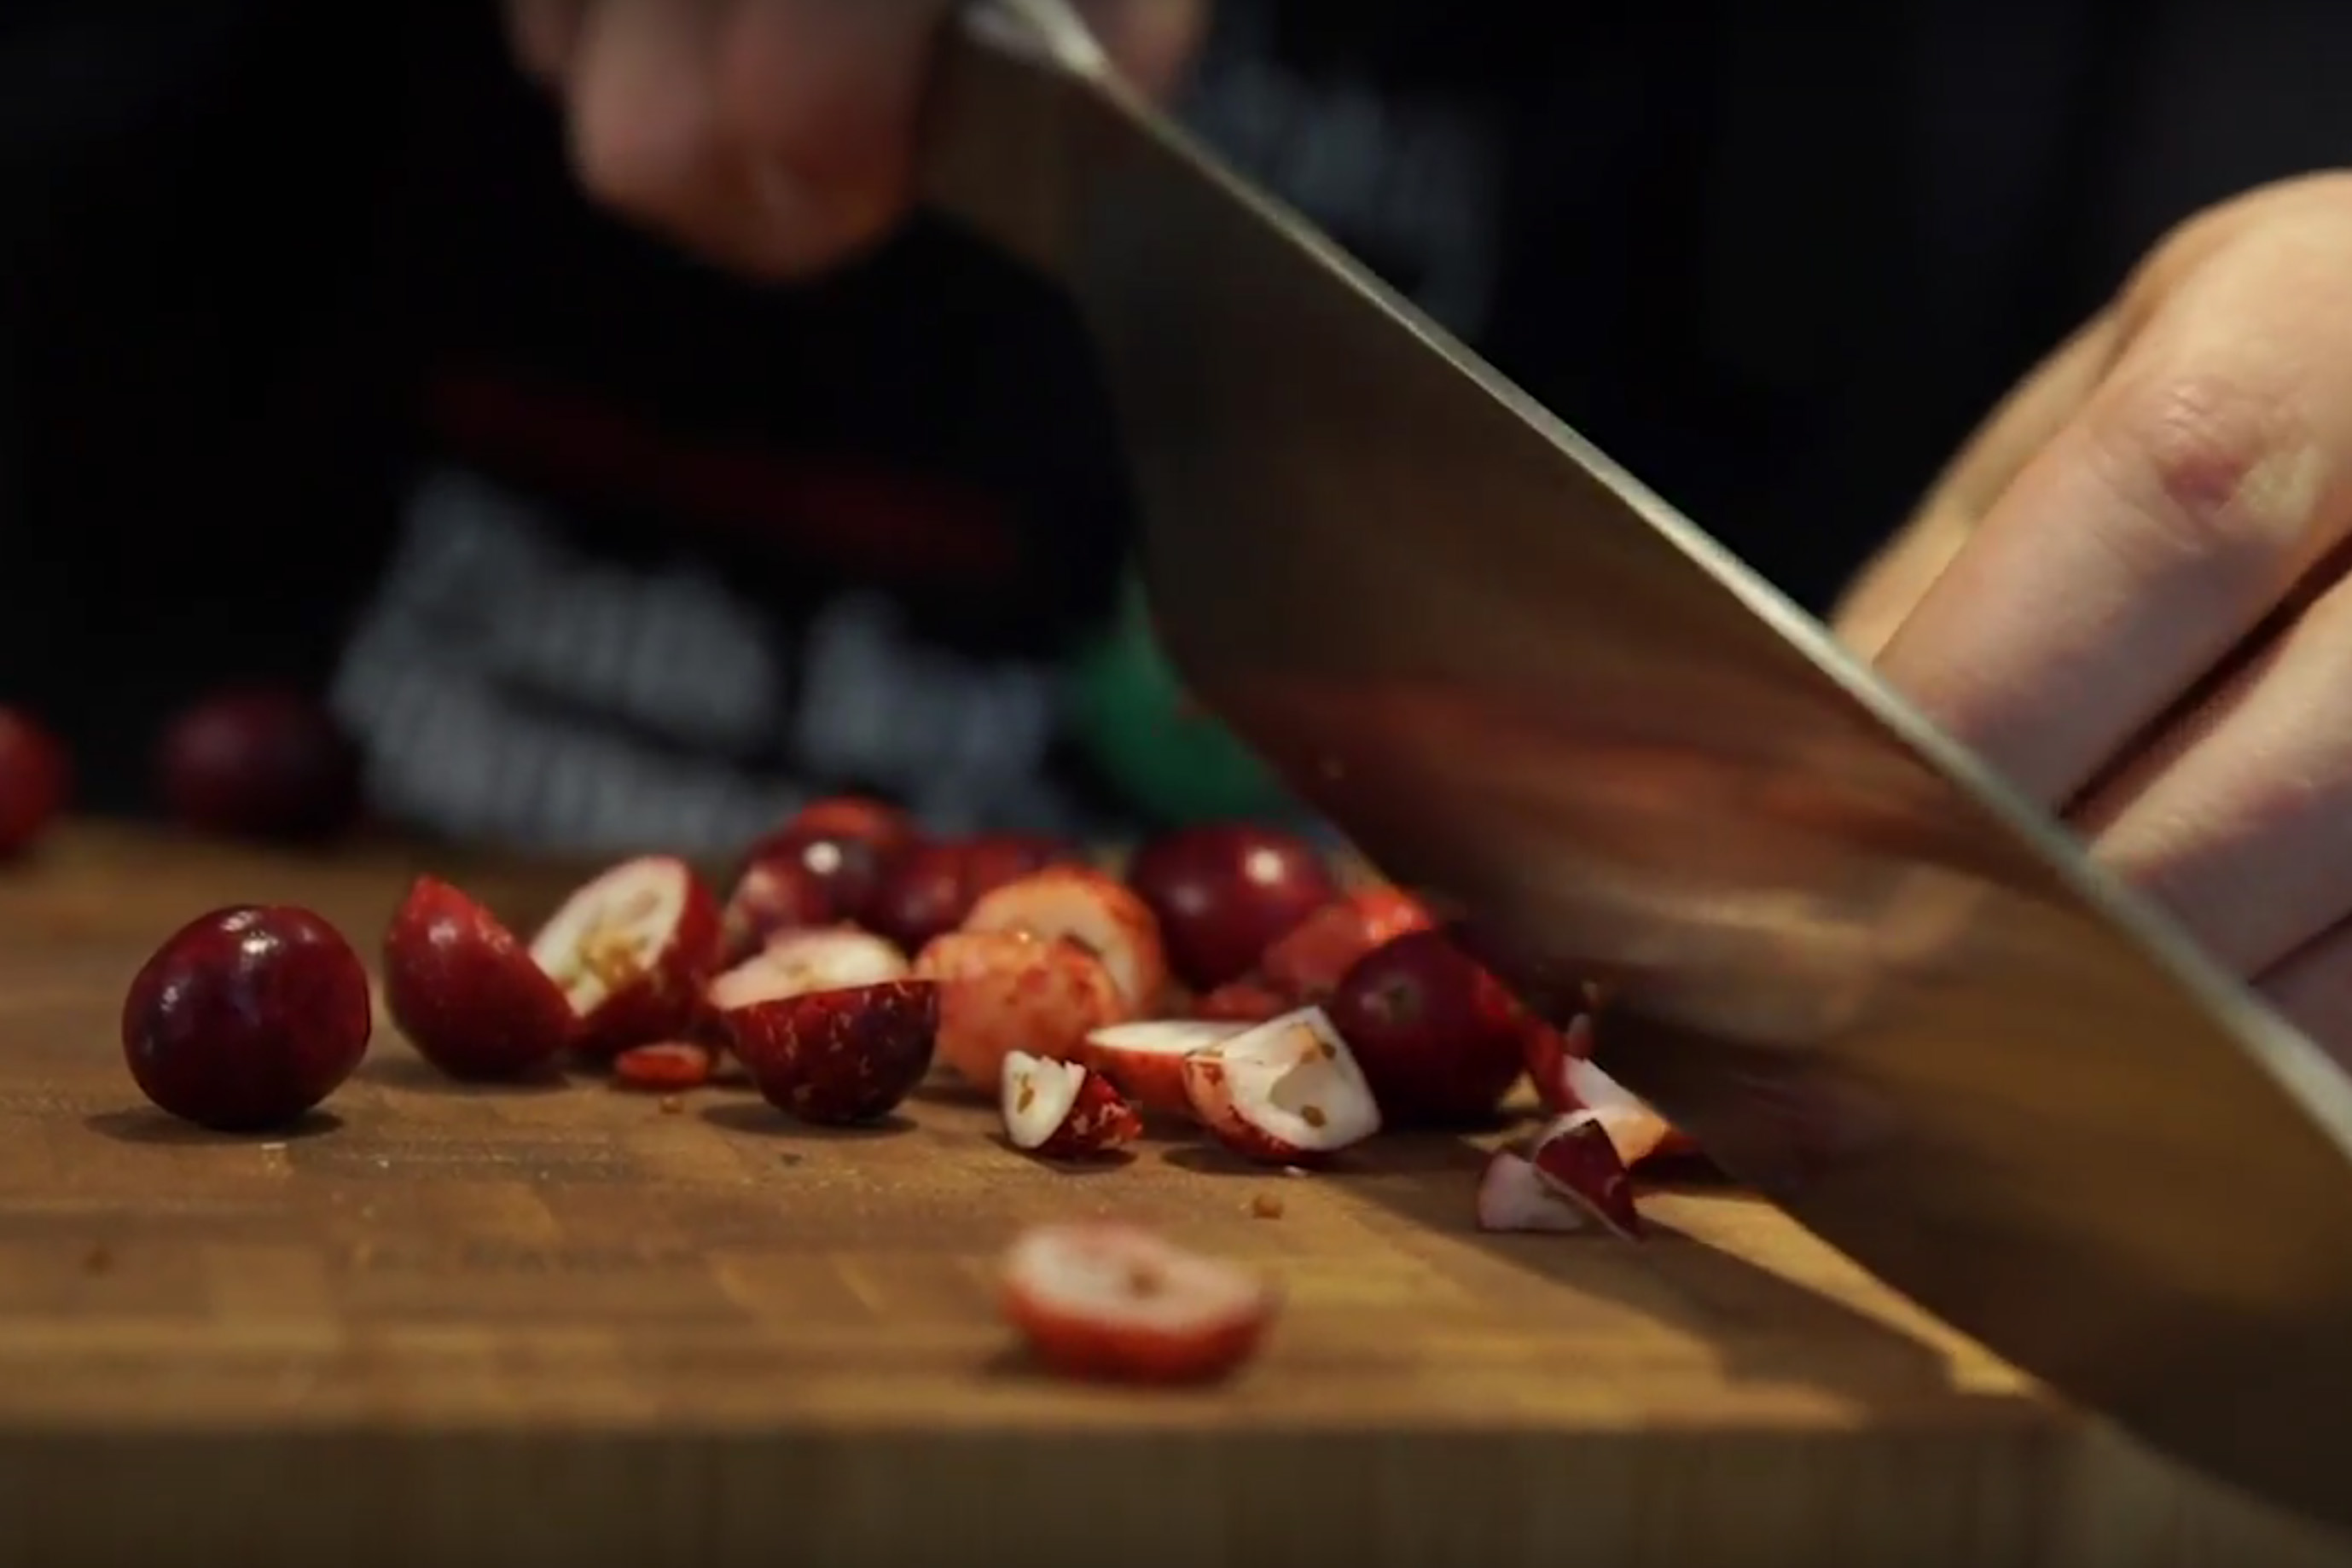 Knife cutting cranberries on a wooden cutting board